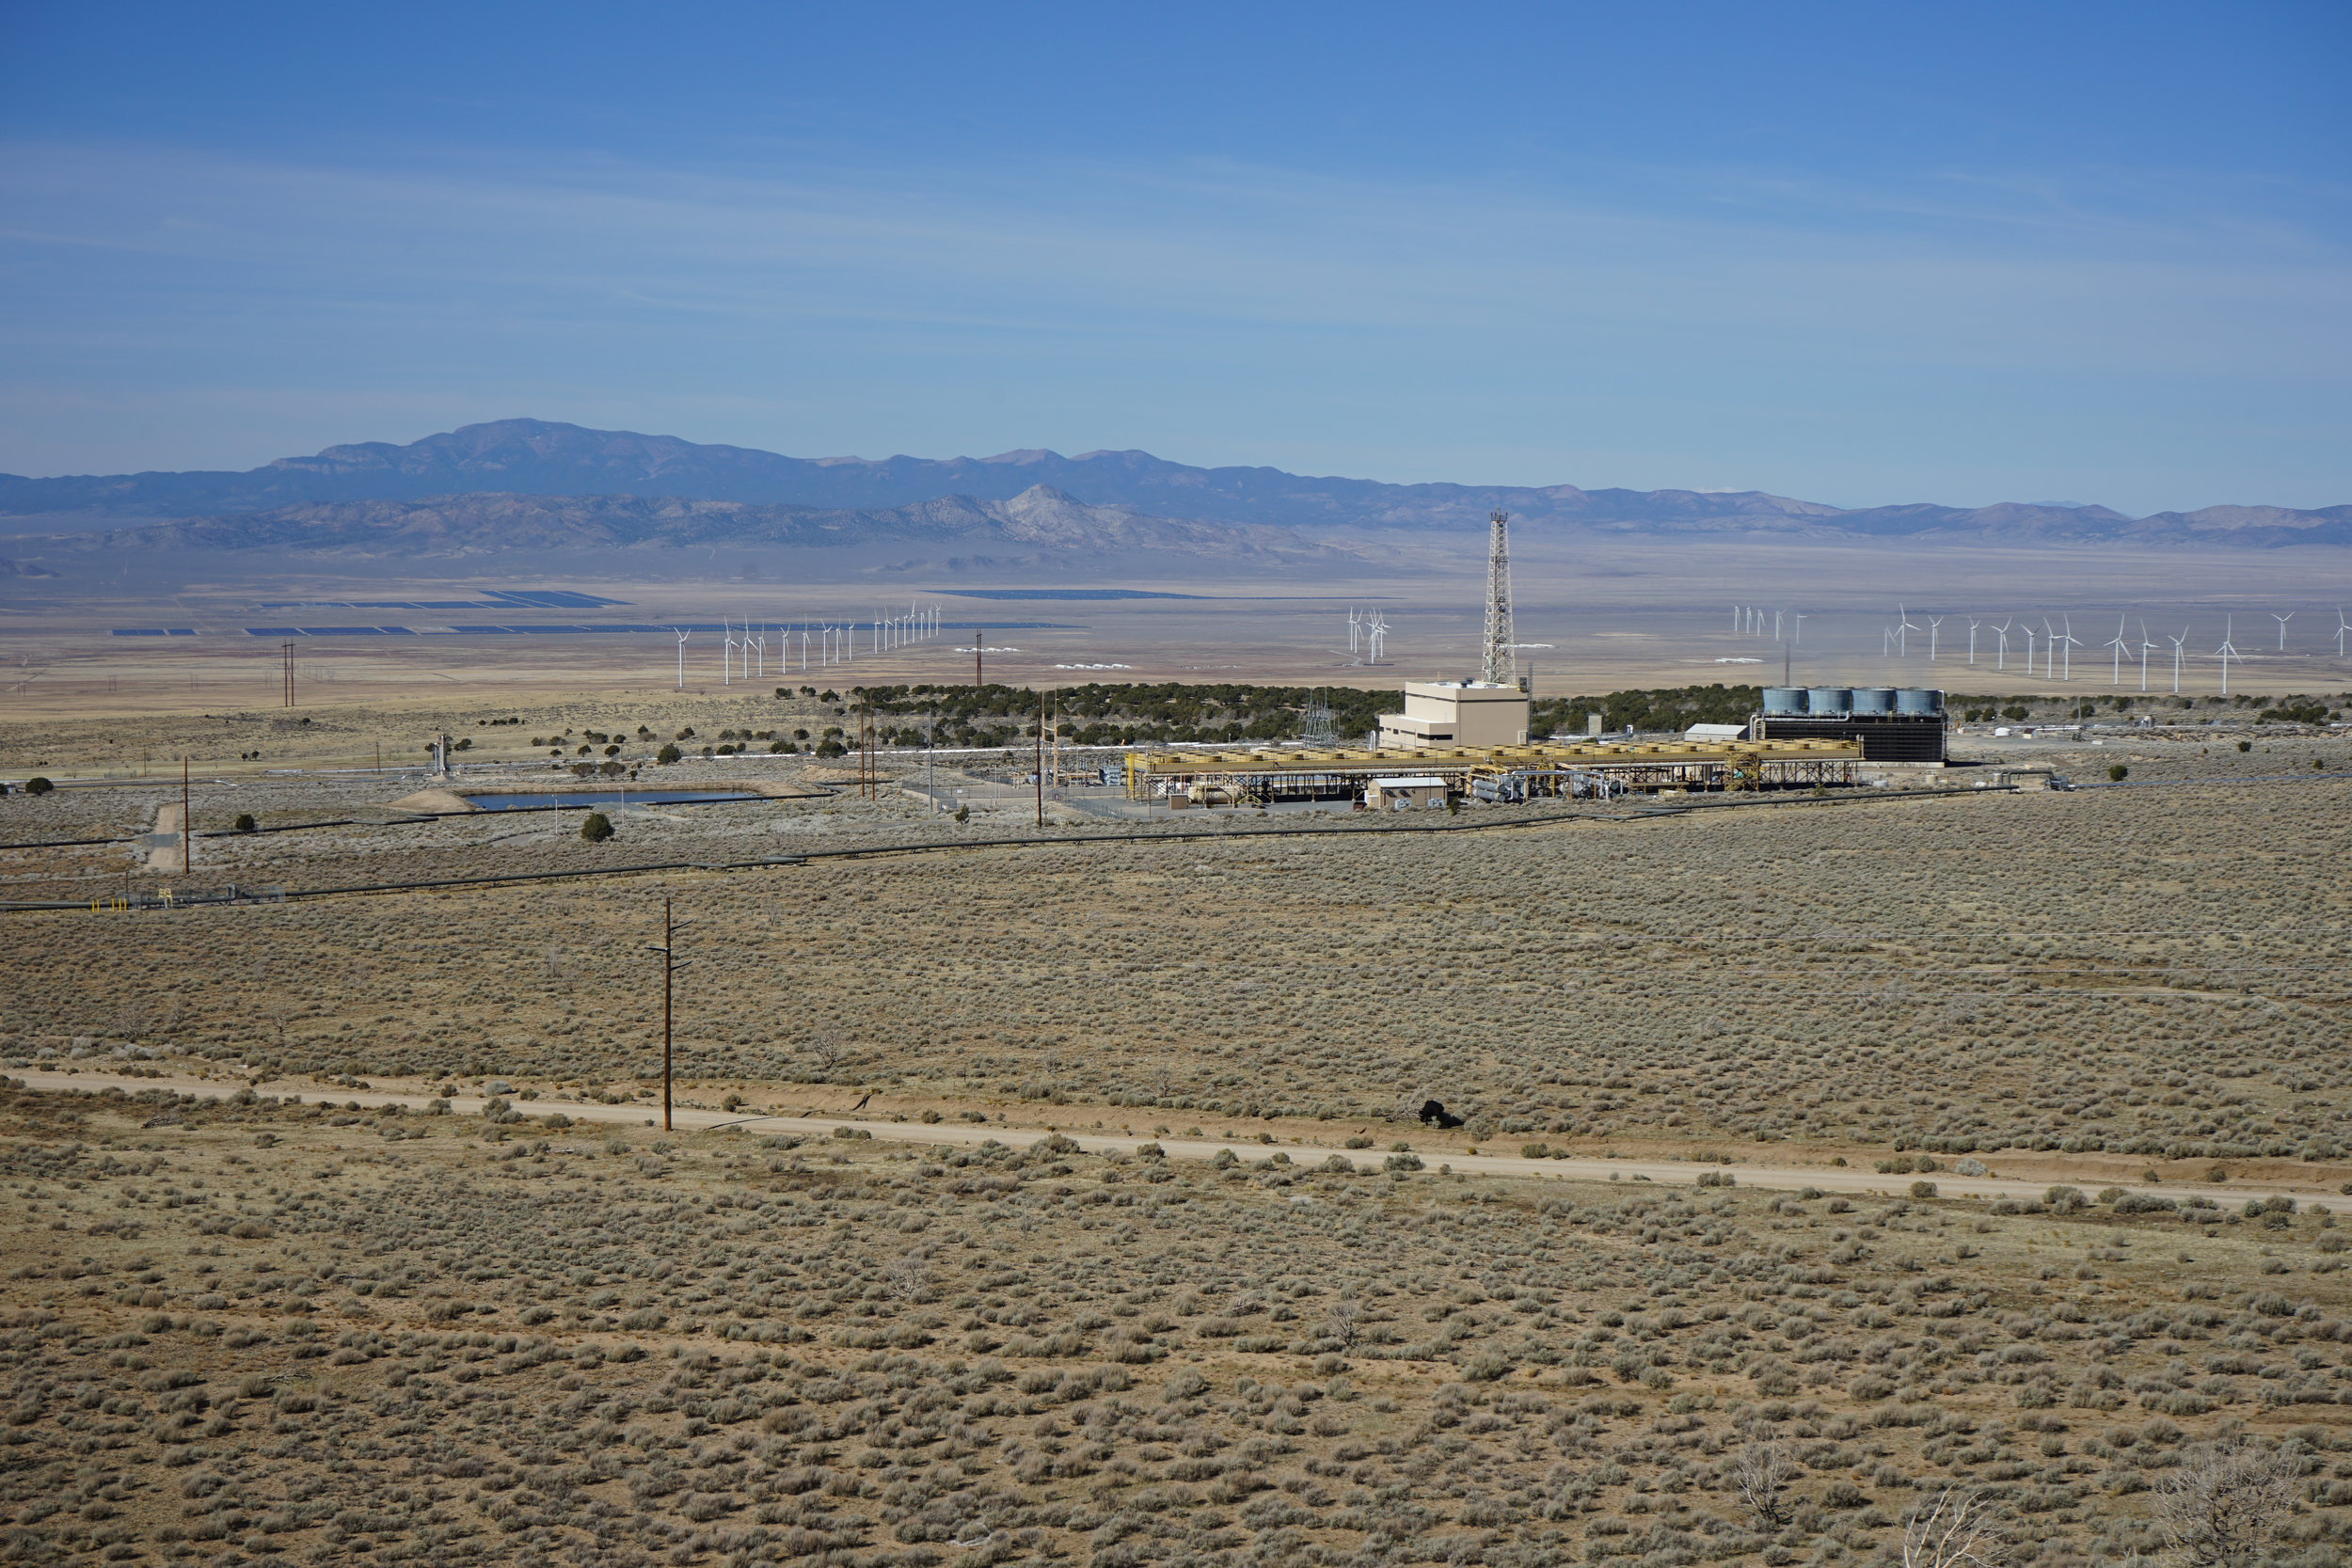 The Milford Renewable Energy Corridor, looking WNW. In the foreground, the Blundell Geothermal Power Plant produces 34 MW of power from a hydrothermal system that appears to be bounded by a steep fault that roughly corresponds to the treed hillside behind the plant. The Milford FORGE site will be between the rows of wind turbines on the right side of the image. Across the valley, a large solar farm also produces electricity.